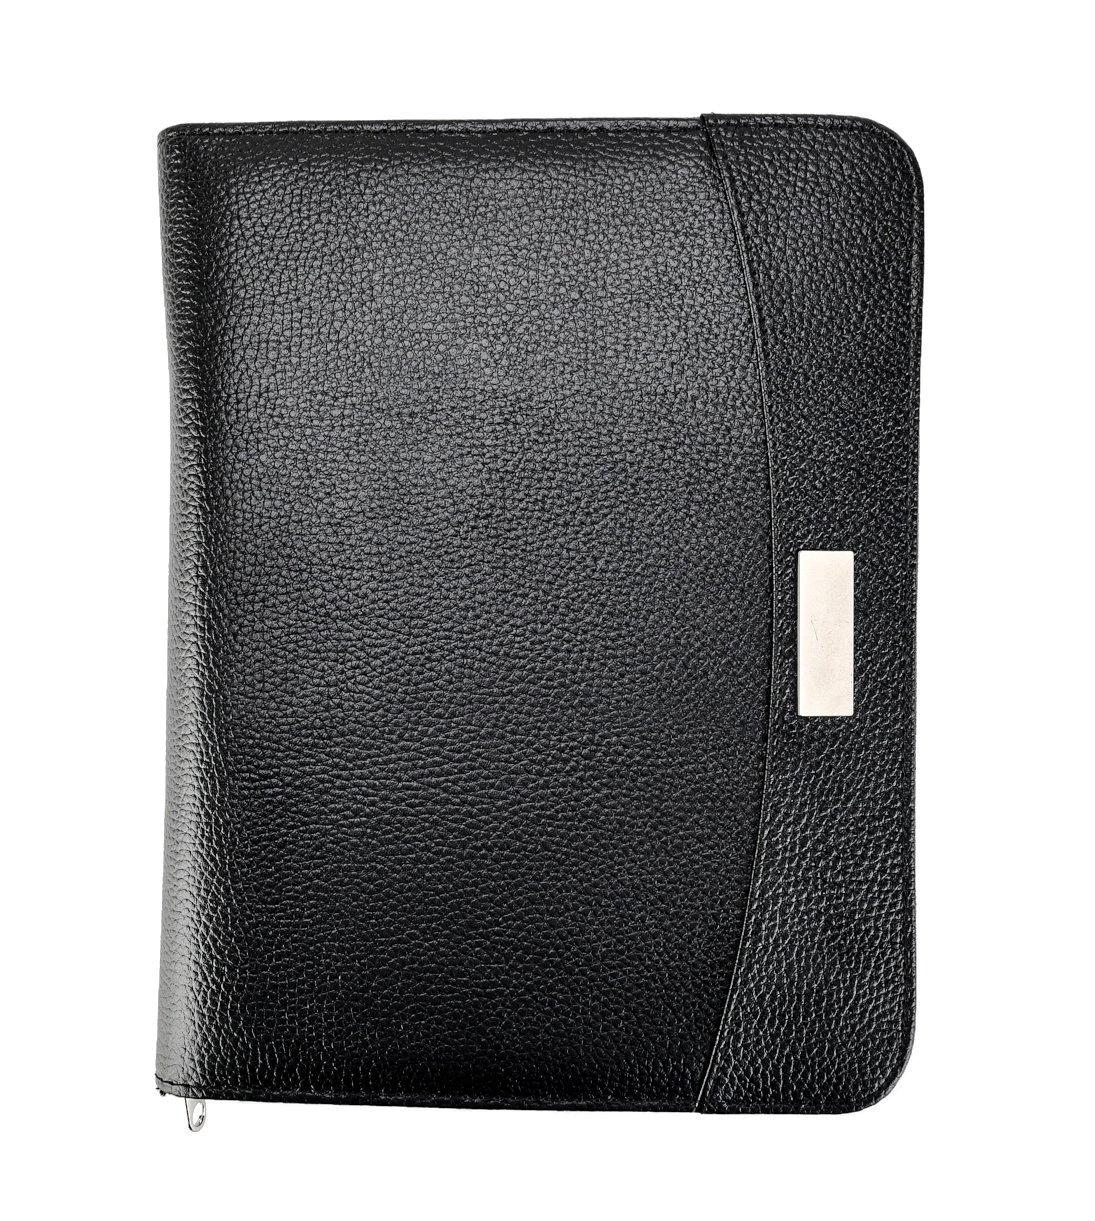 Arpan A5 Zipped Business Executive Conference Folder With Calculator & Pad Ring Binder Portfolio - Black CL-9584